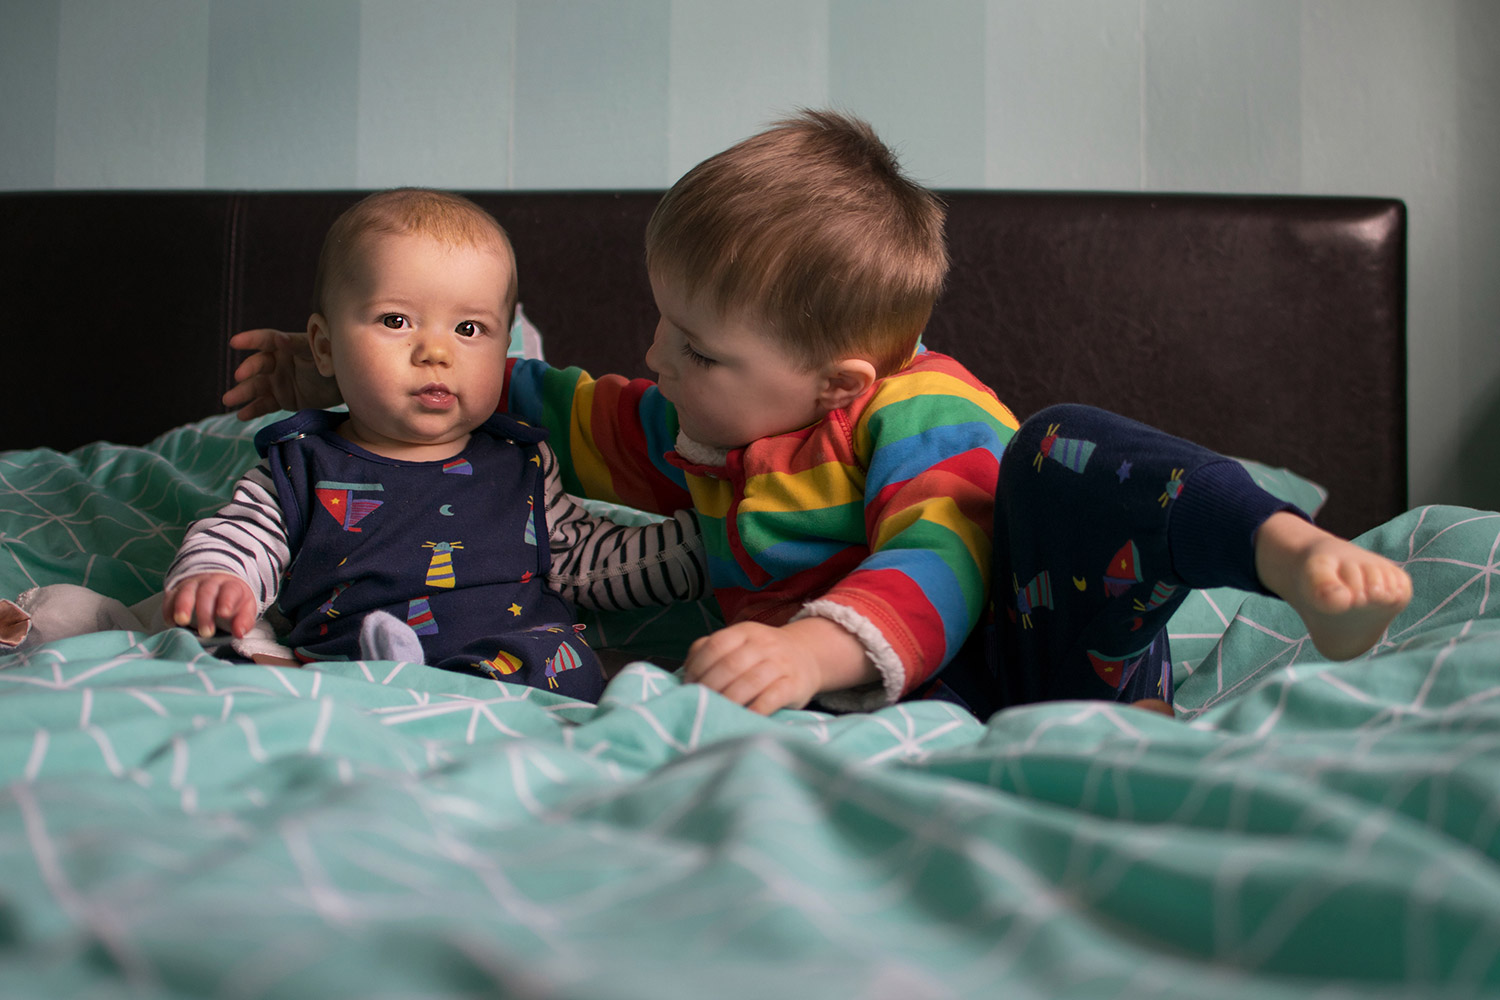 Big Brother, Little Brother {Fashion Friday 048} - 3 year old and twinning 6 month old brother wearing Piccalilly lighthouse print dungarees and harem trousers and Frugi rainbow fleece top